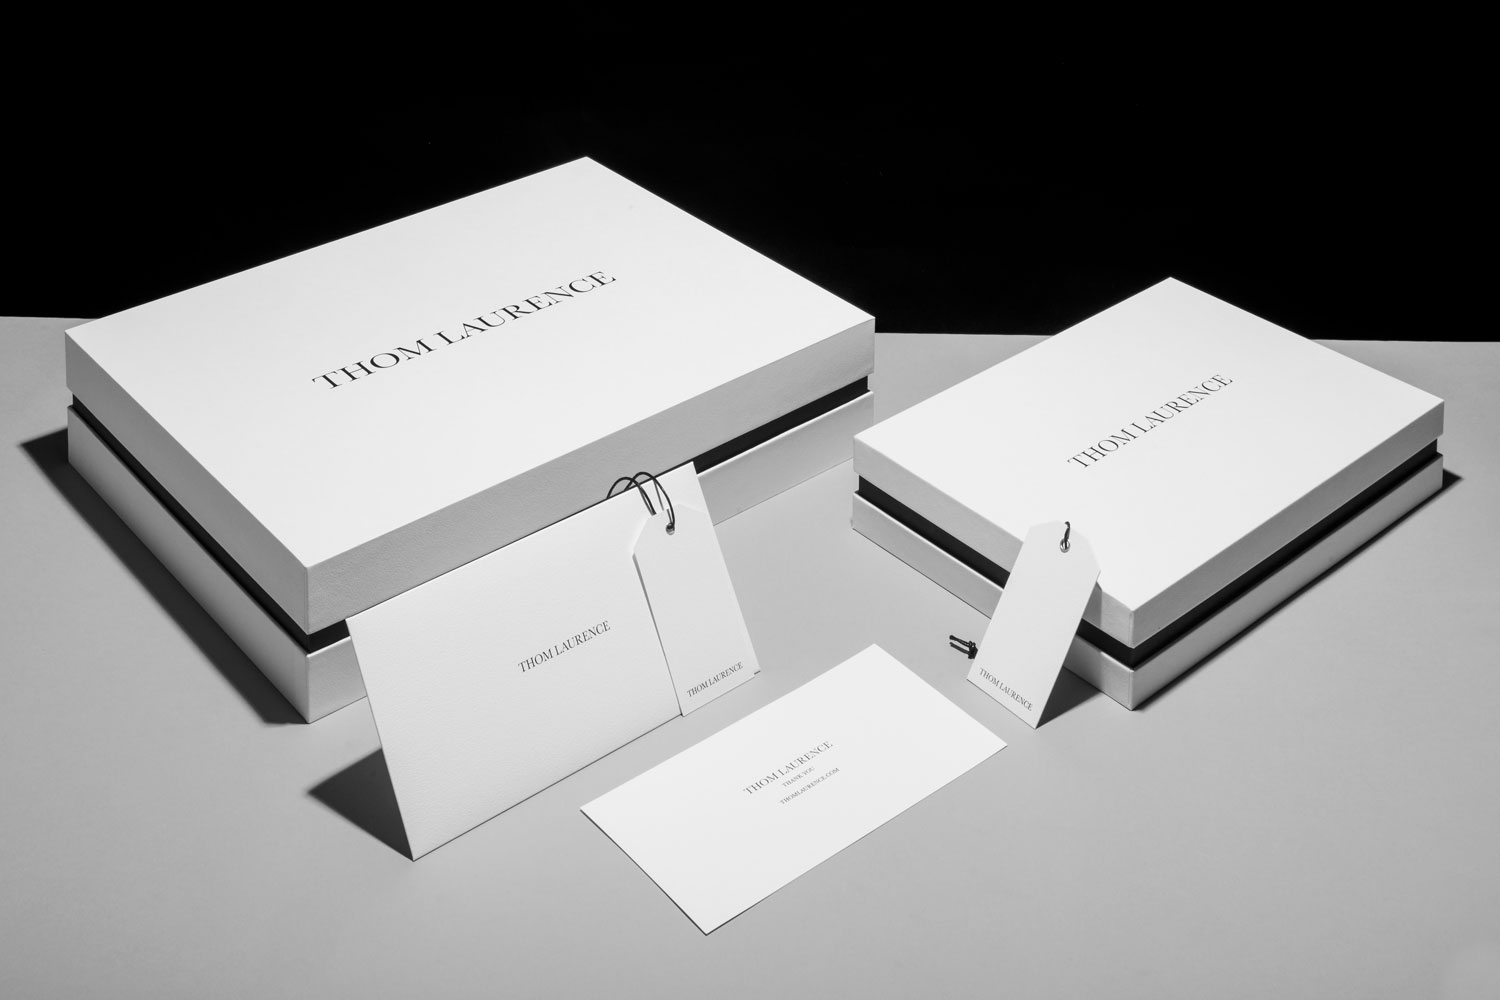 Progress Packaging Thom Laurence Bespoke Luxury Colorplan Embossed Blackfoil Box Manufacture Production Print 01